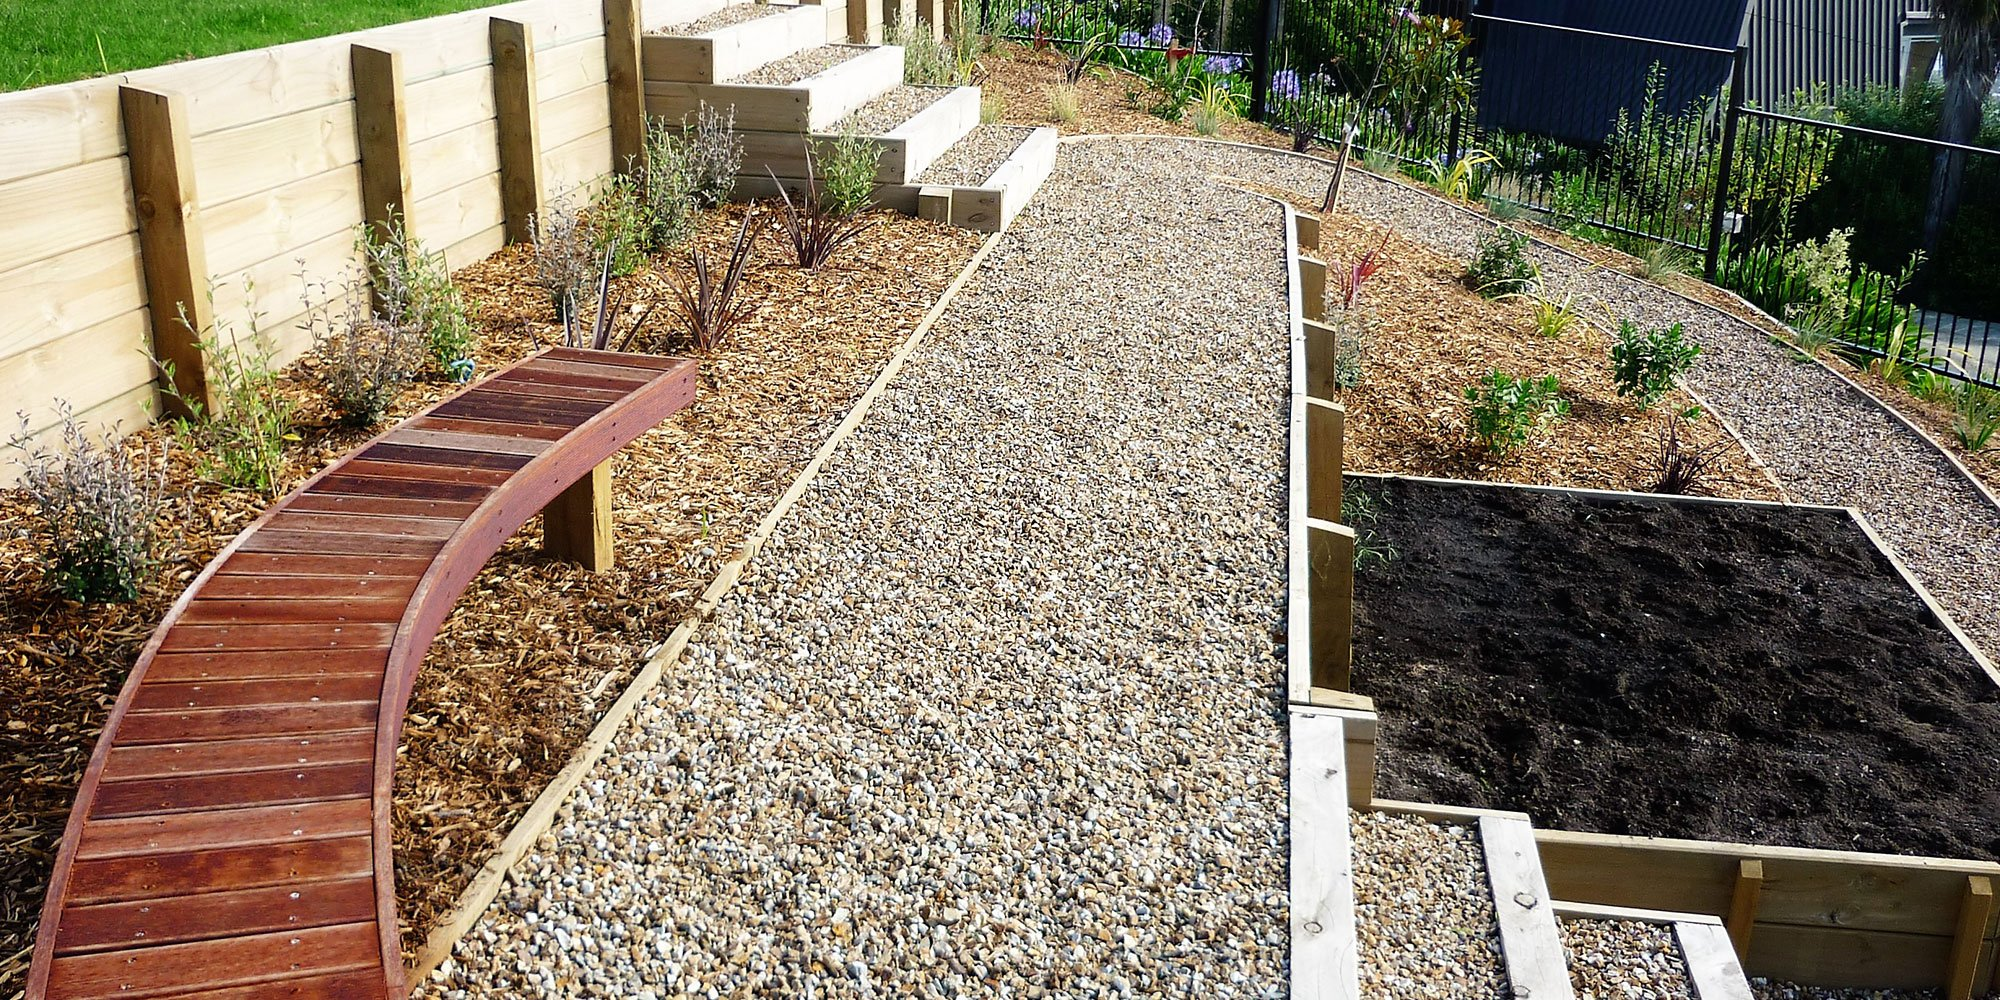 L j landscape contractors landscaping christchurch for Landscape contractors christchurch